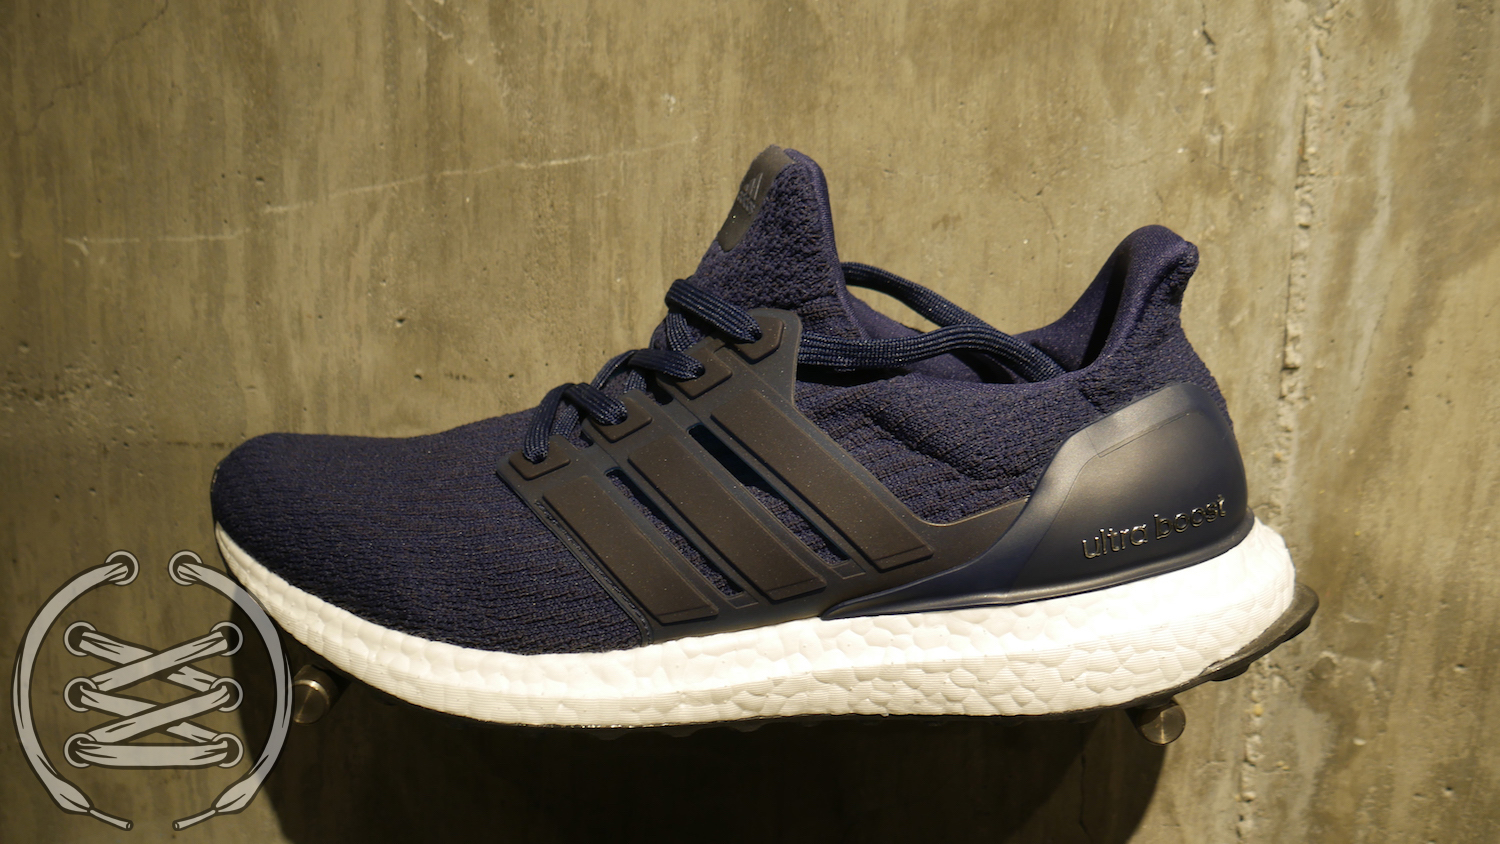 776d6ce24 adidas nyc ultraboost 3.0 navy 3 - WearTesters